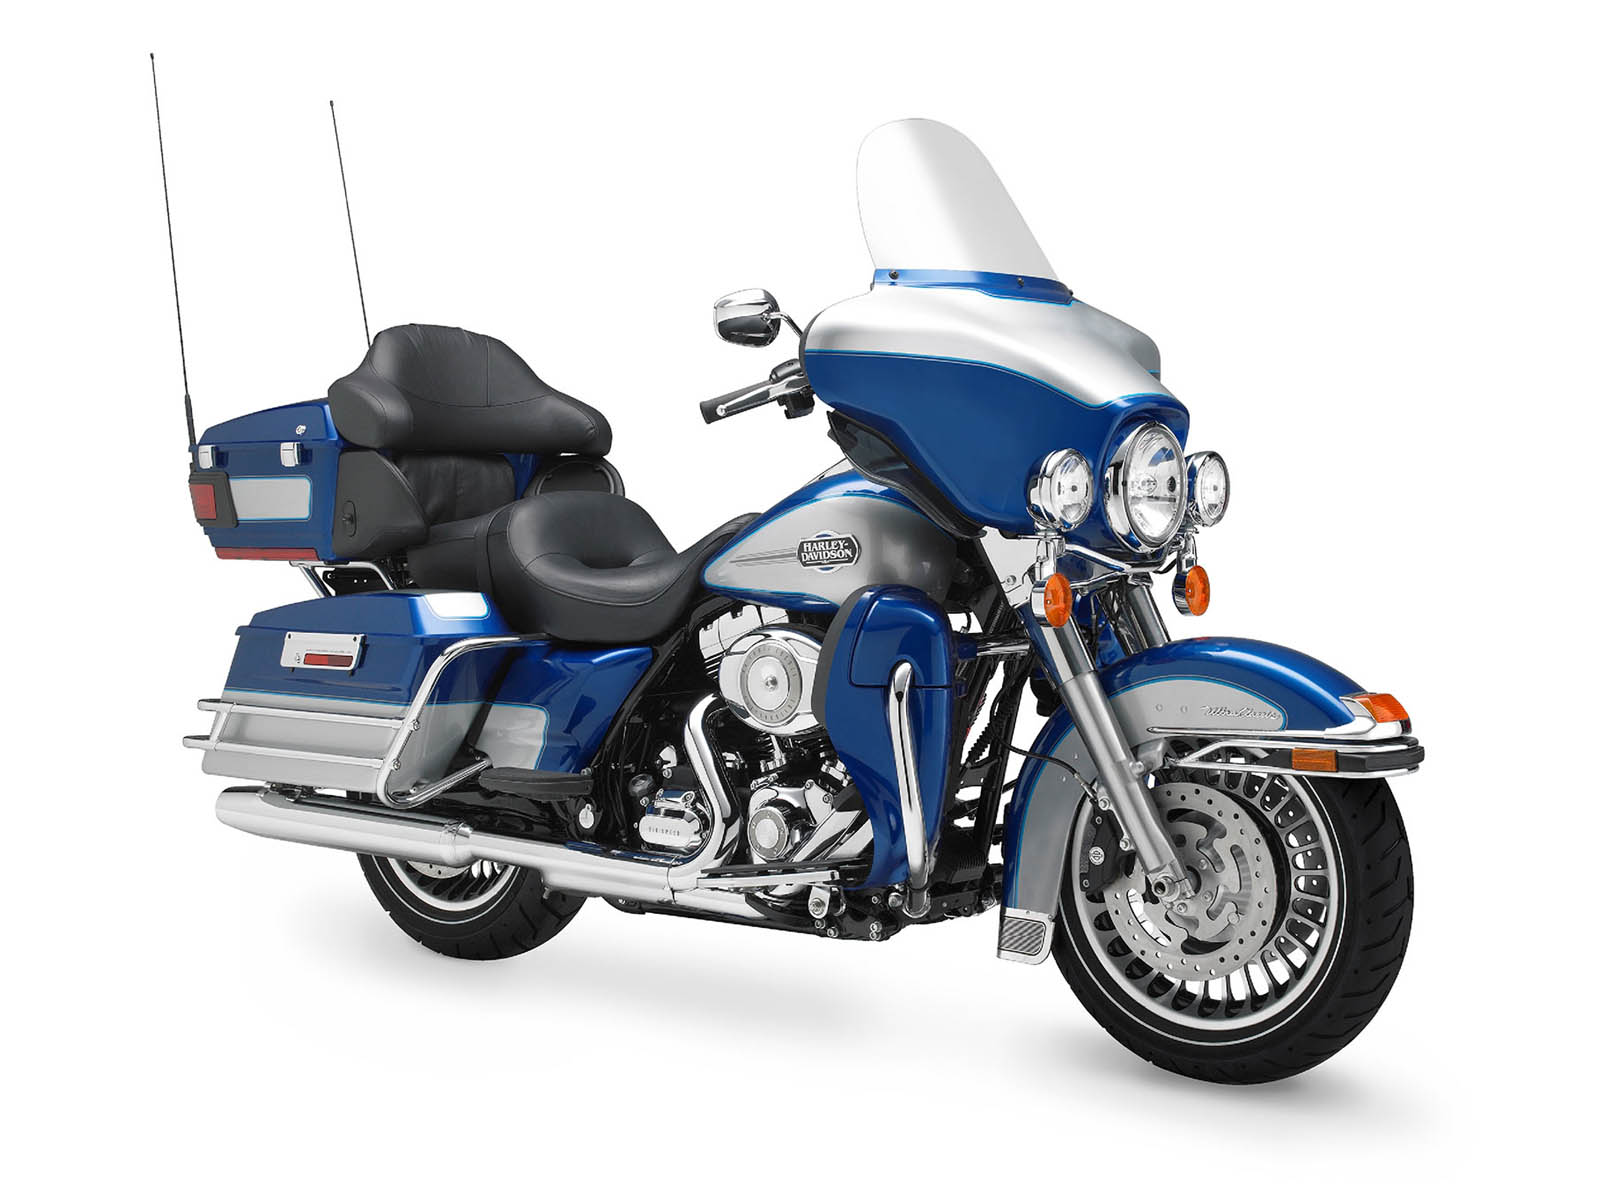 1600x1200 - Harley-Davidson Electra Glide Ultra Classic Wallpapers 36